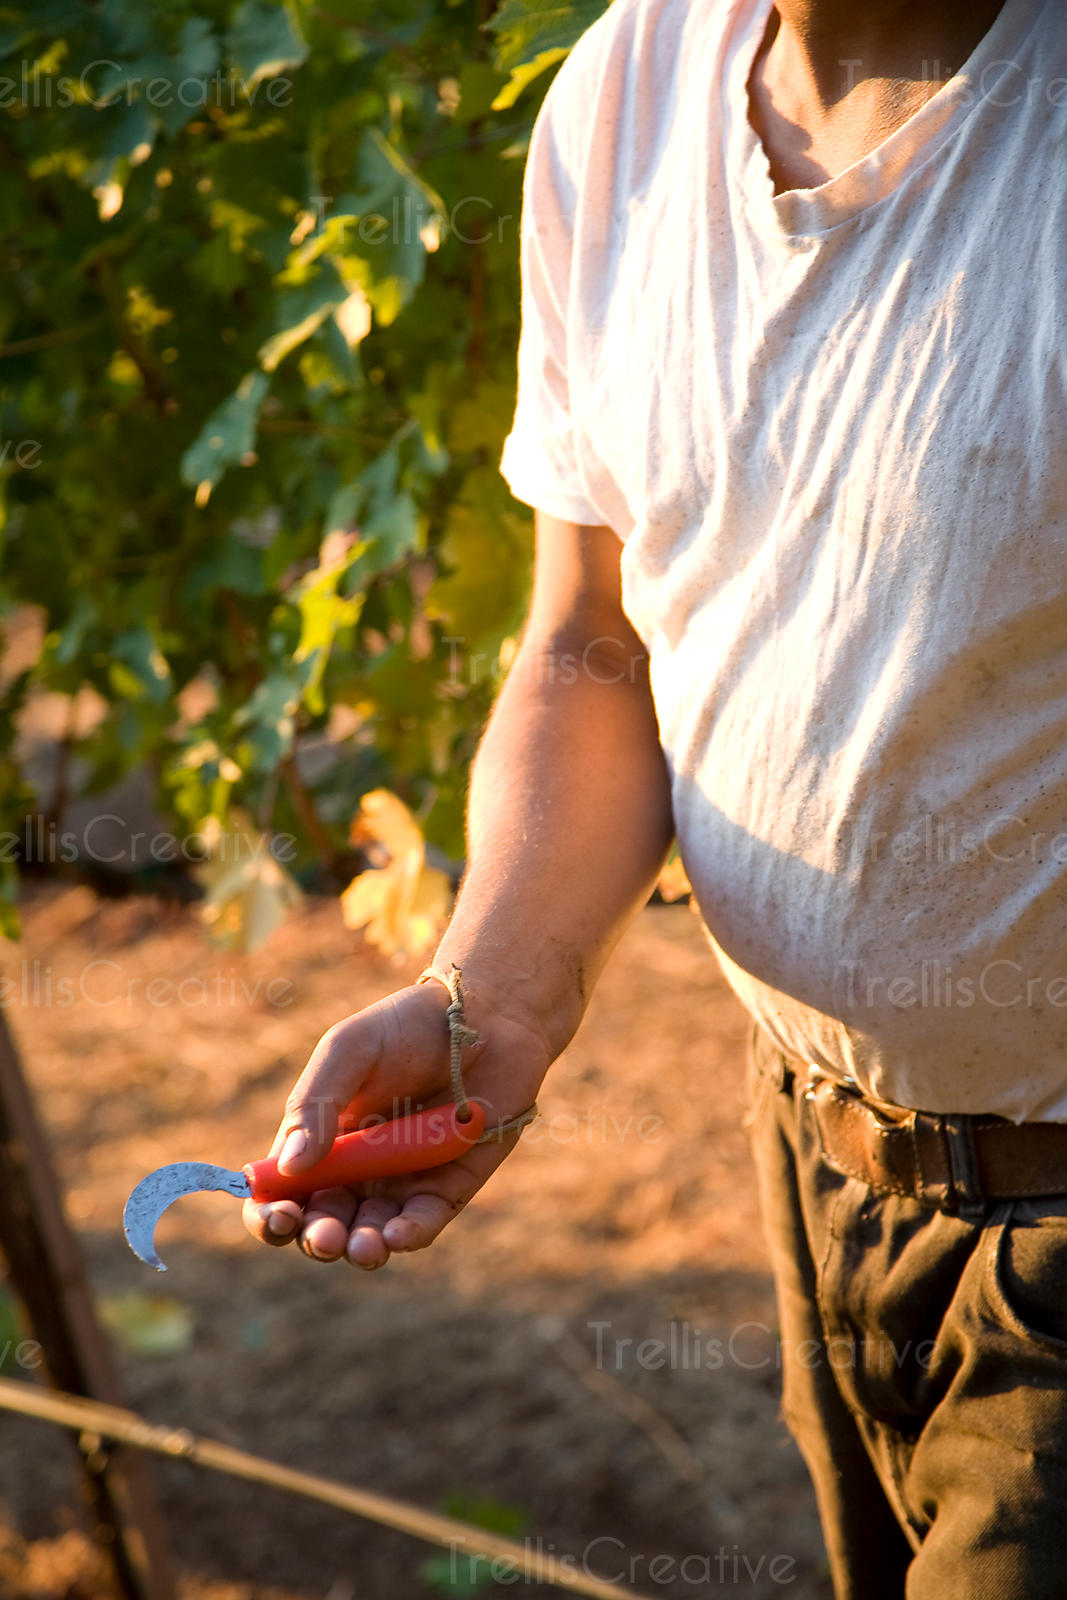 Vineyard worker shows the knife used to harvest grapes